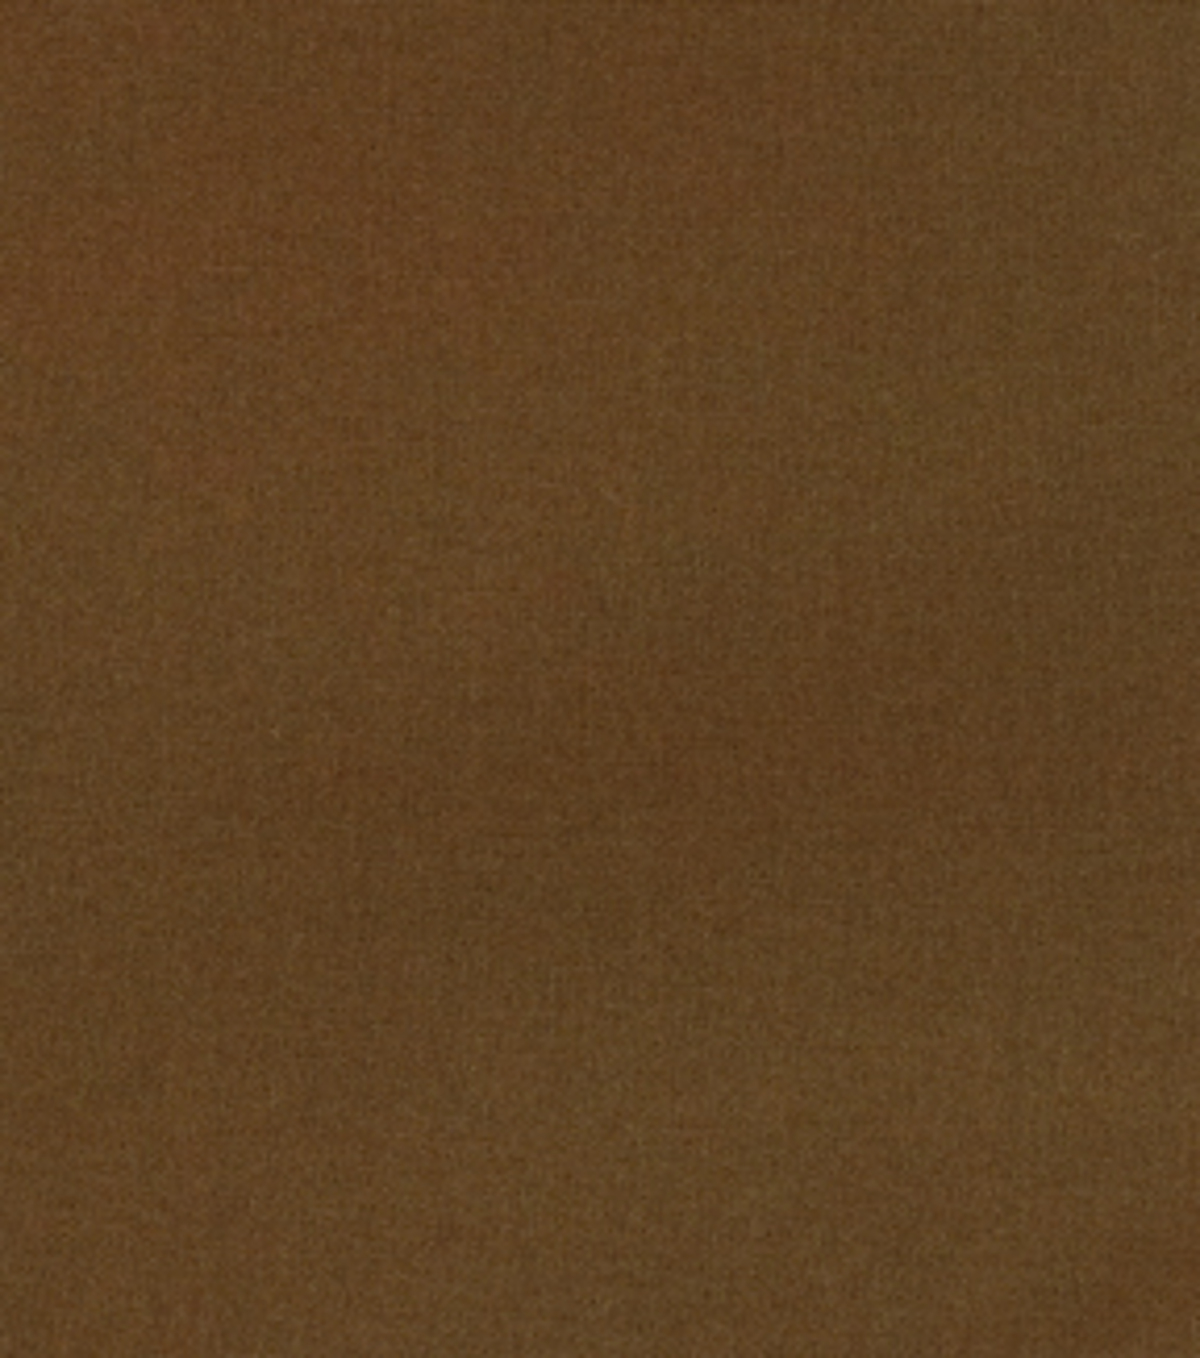 Home Decor 8\u0022x8\u0022 Fabric Swatch-Signature Series Ultra Taffeta Auburn